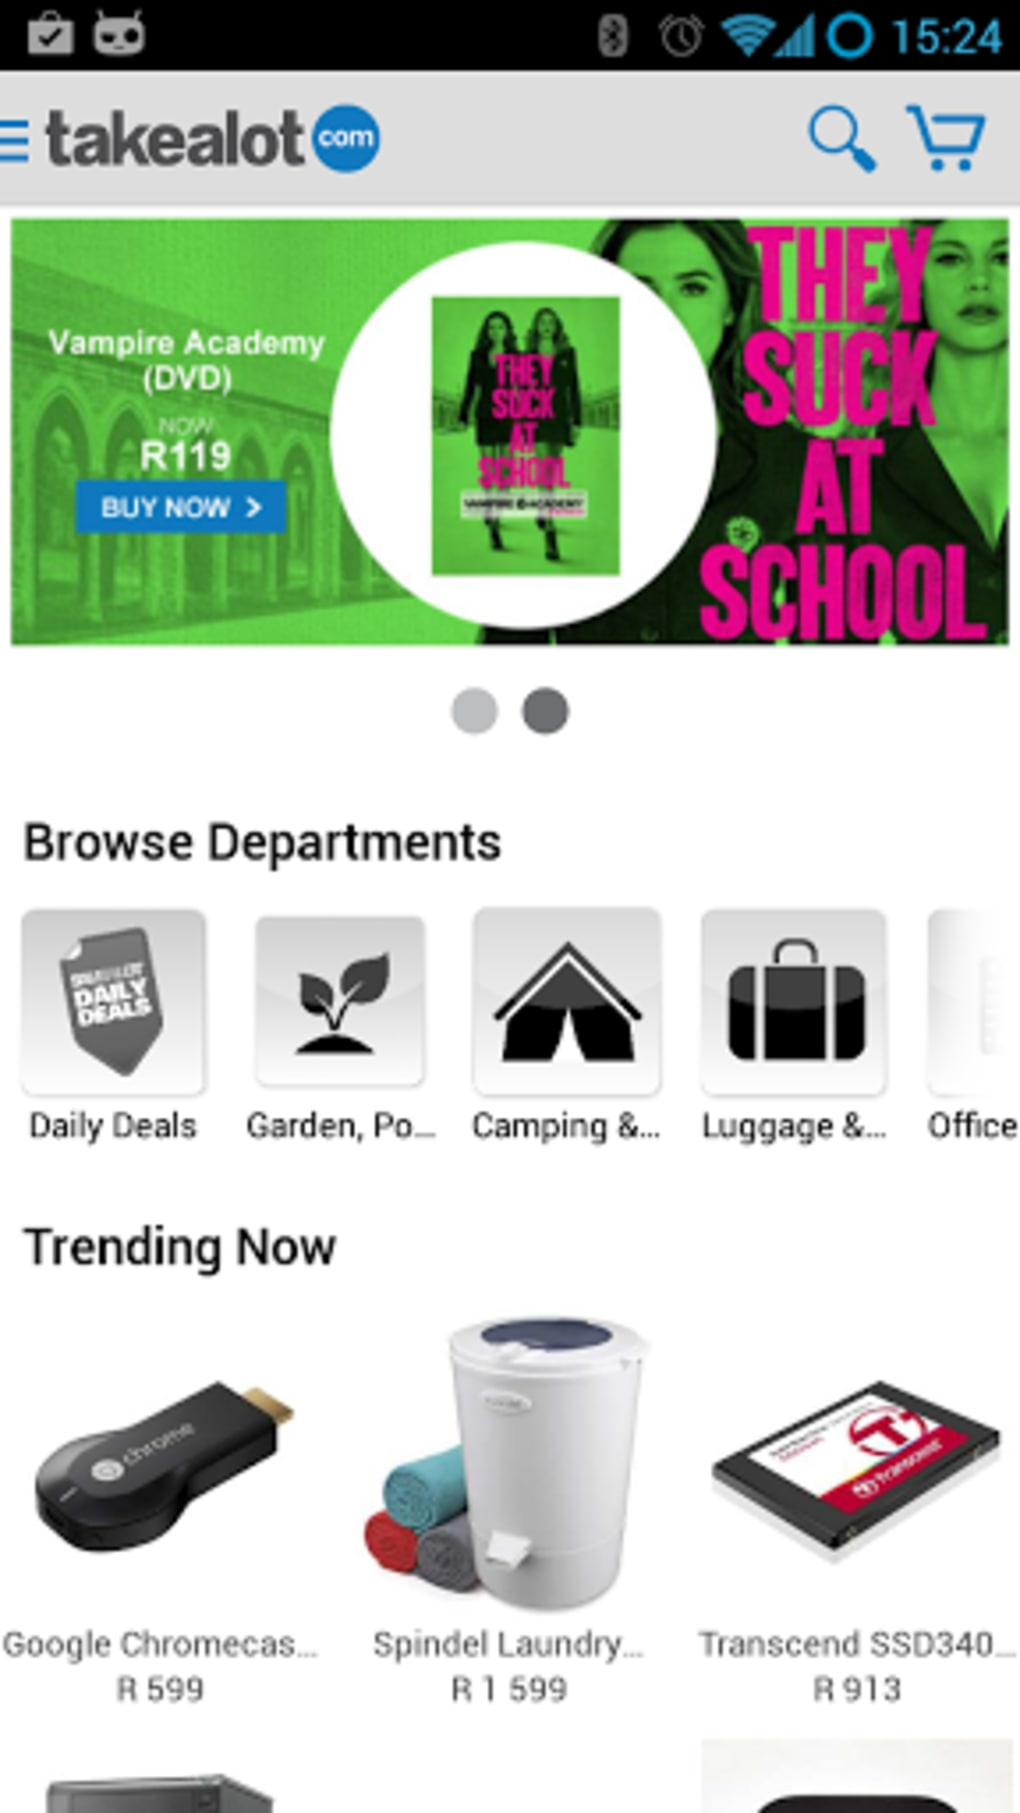 takealot.com for Android - Download